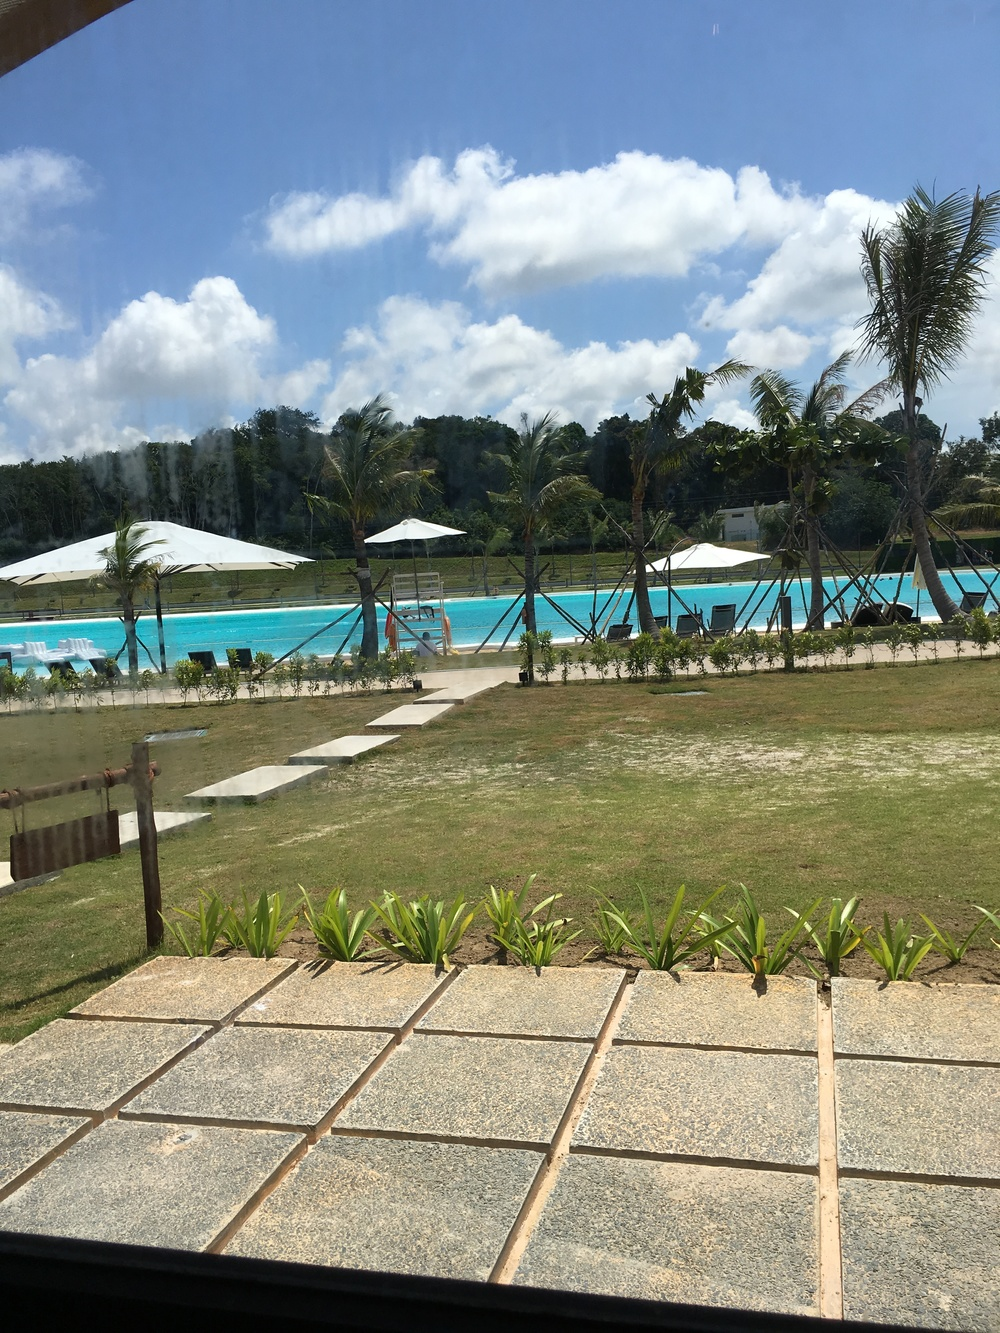 Our view from our tent entrance... Steps away from the lagoon pool!